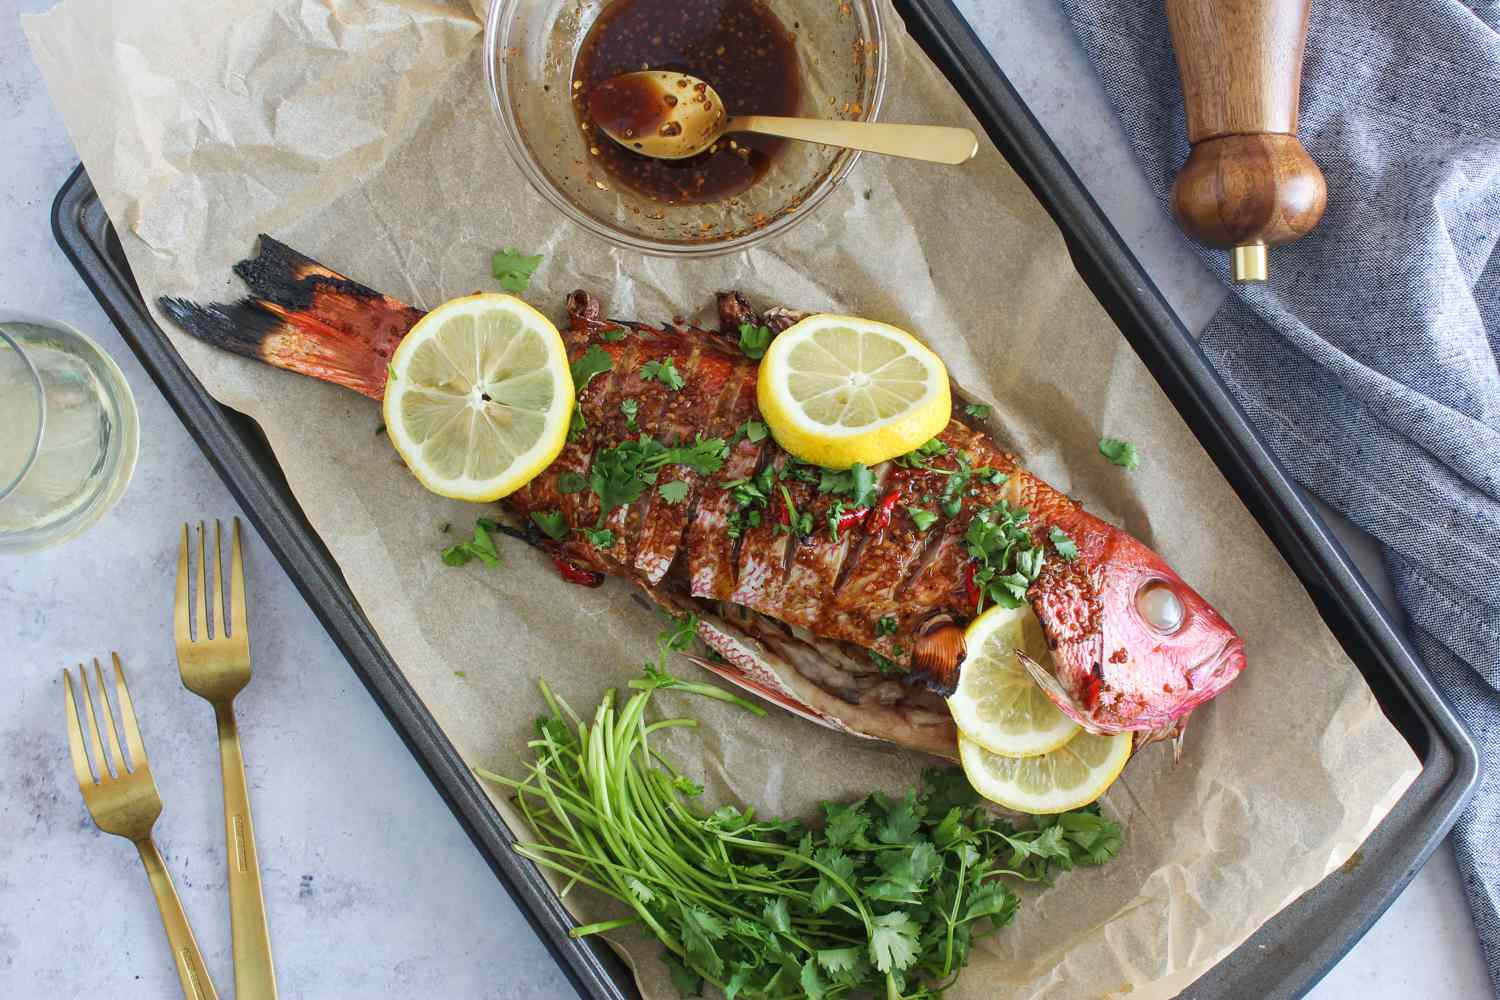 Baked whole fish in garlic-chili sauce